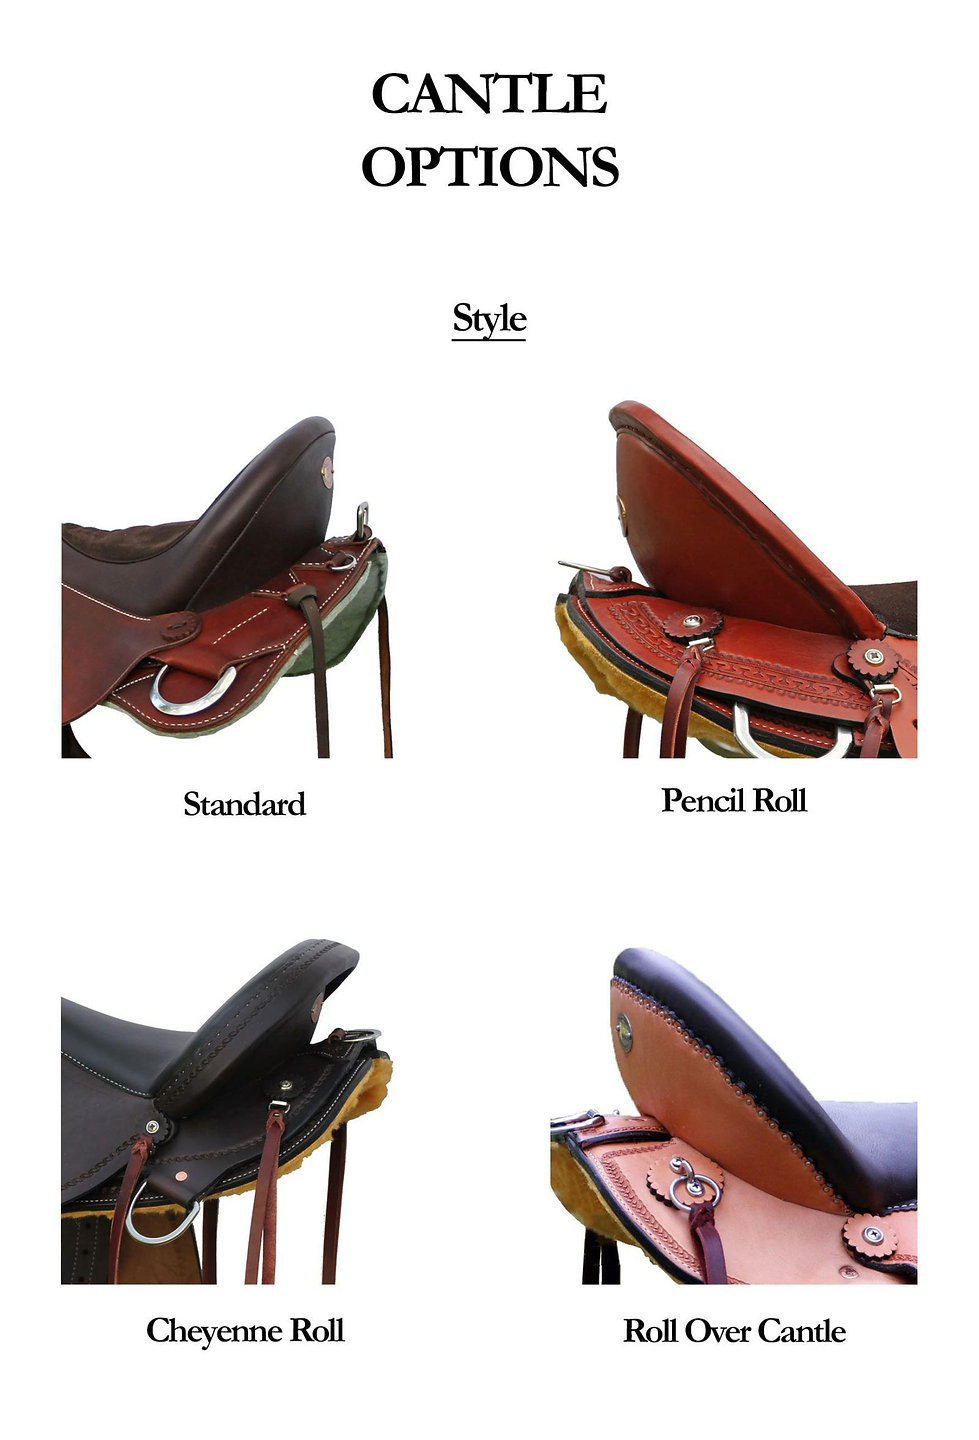 Cantle styles available